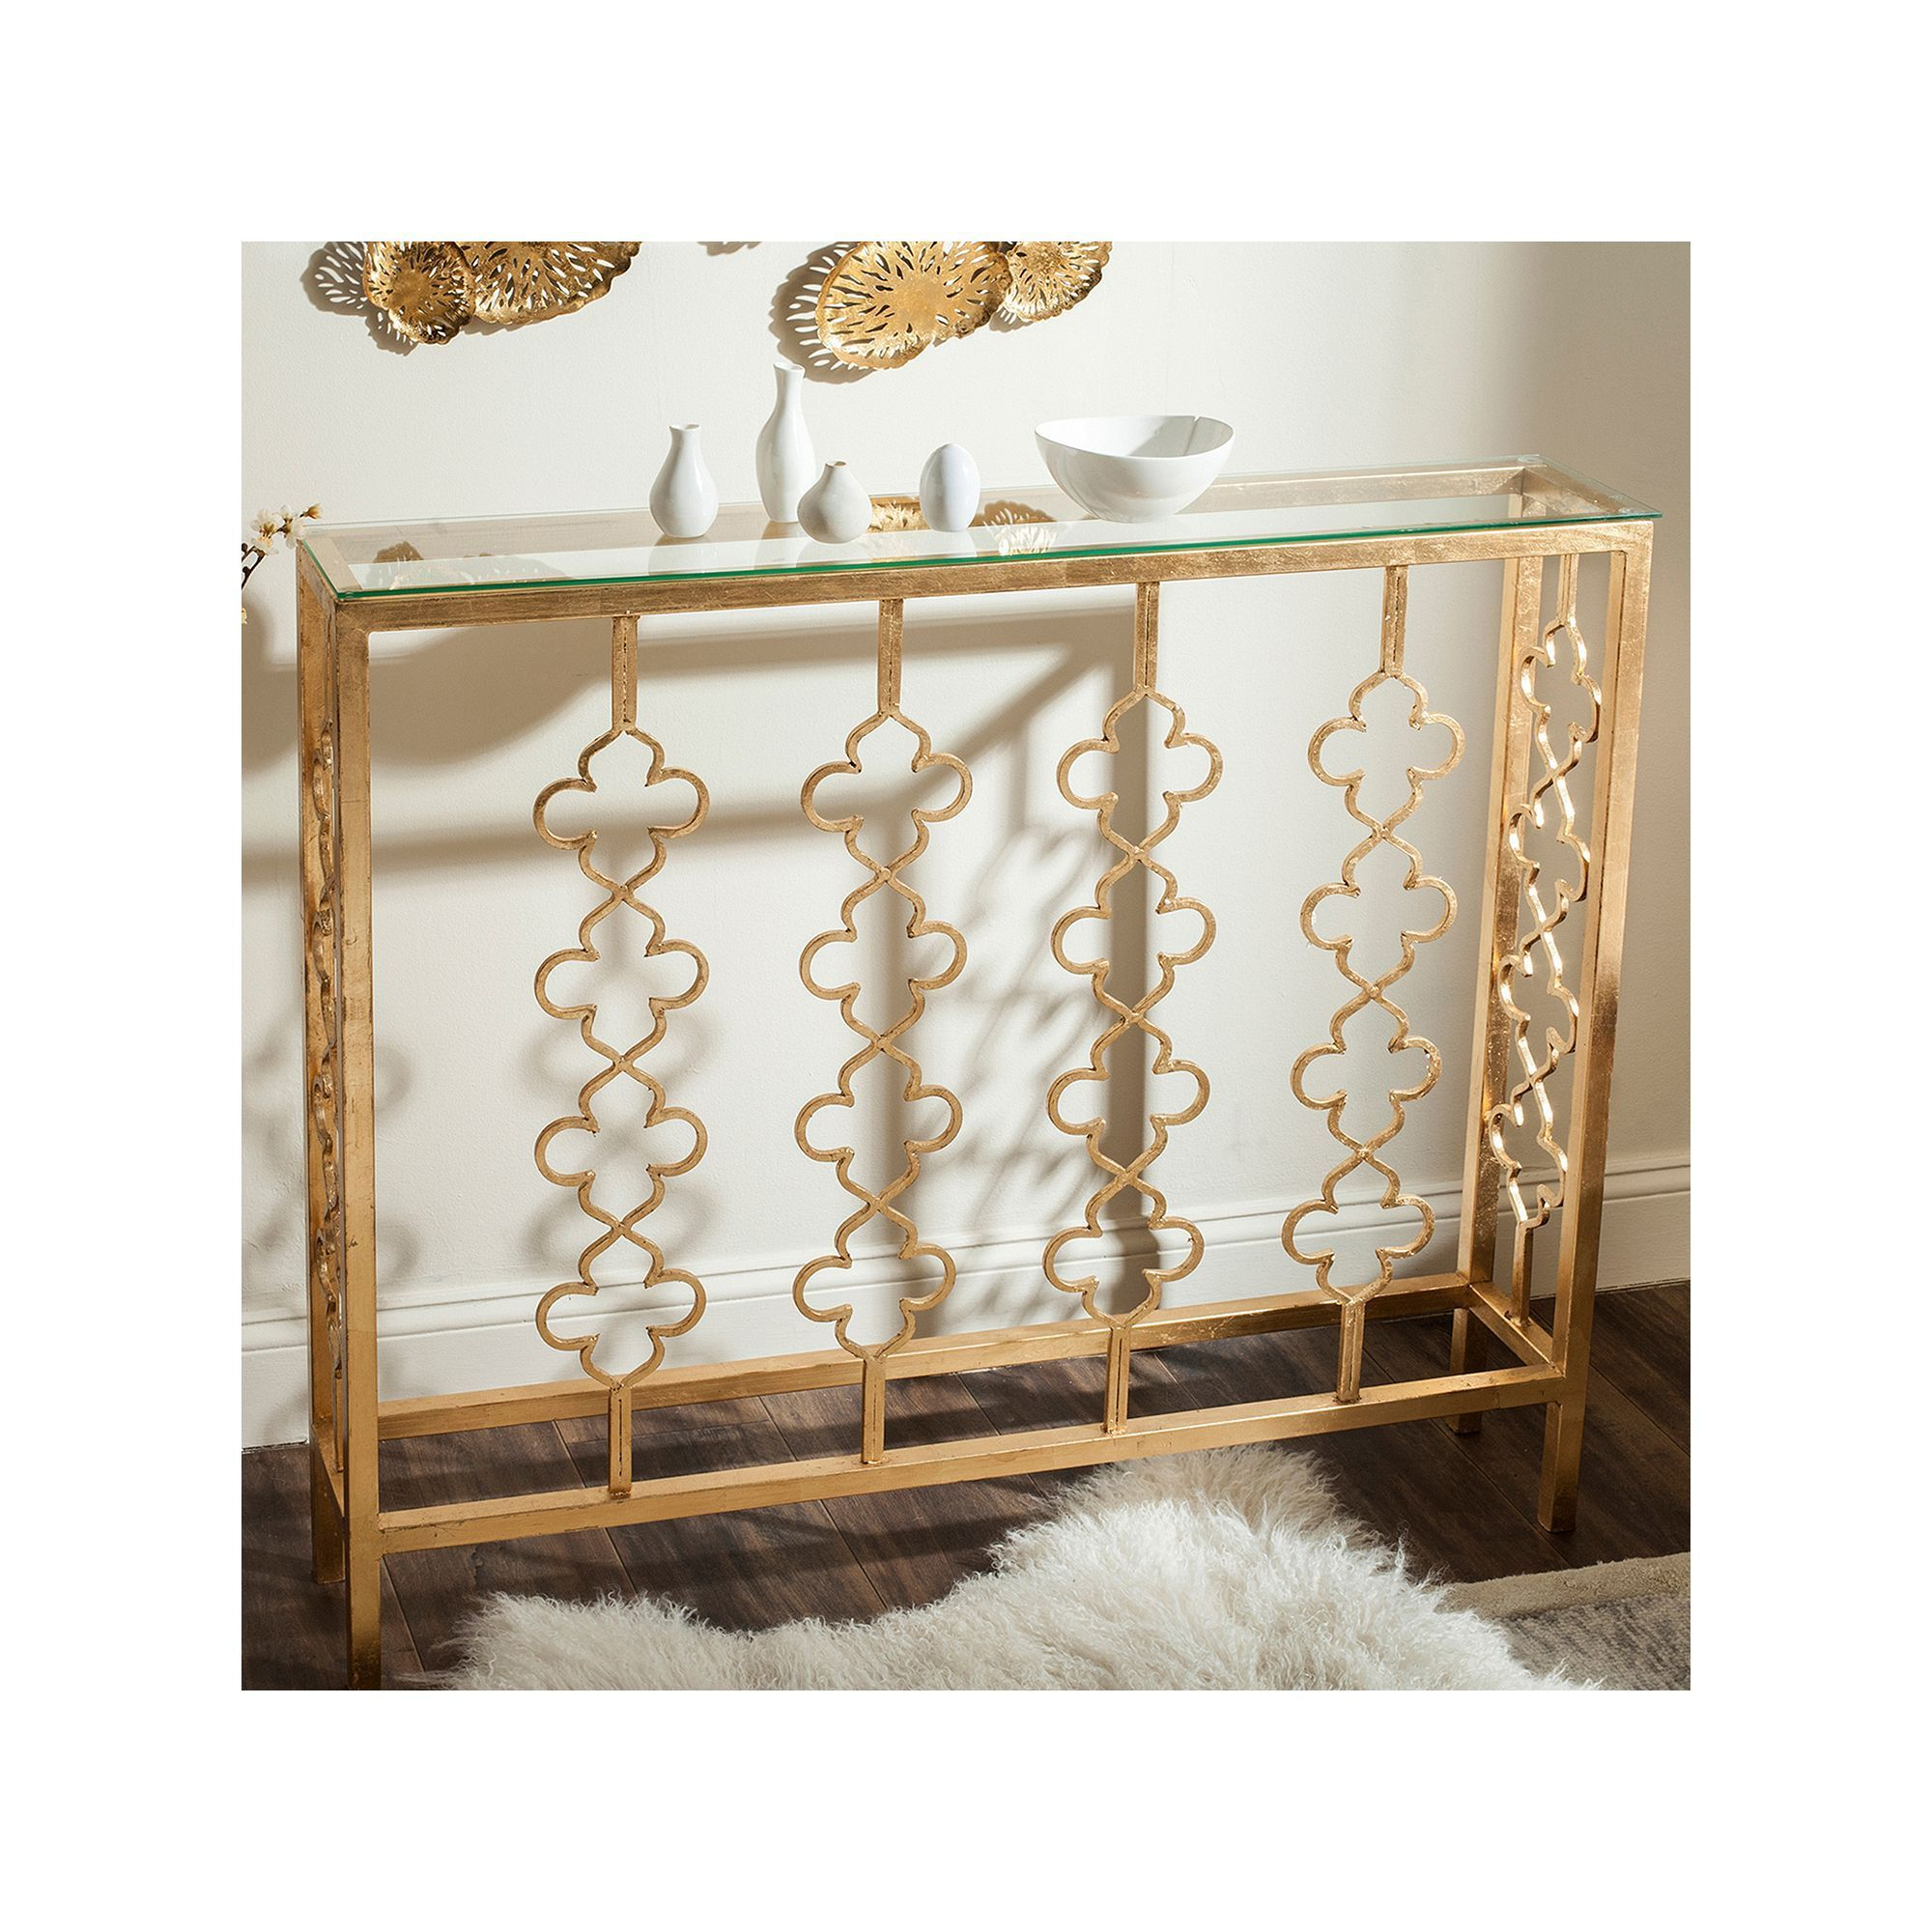 144d6bc40abd4 Gold - Accent Tables - Living Room Furniture - The Home Depot. Safavieh  Carolina Console Table